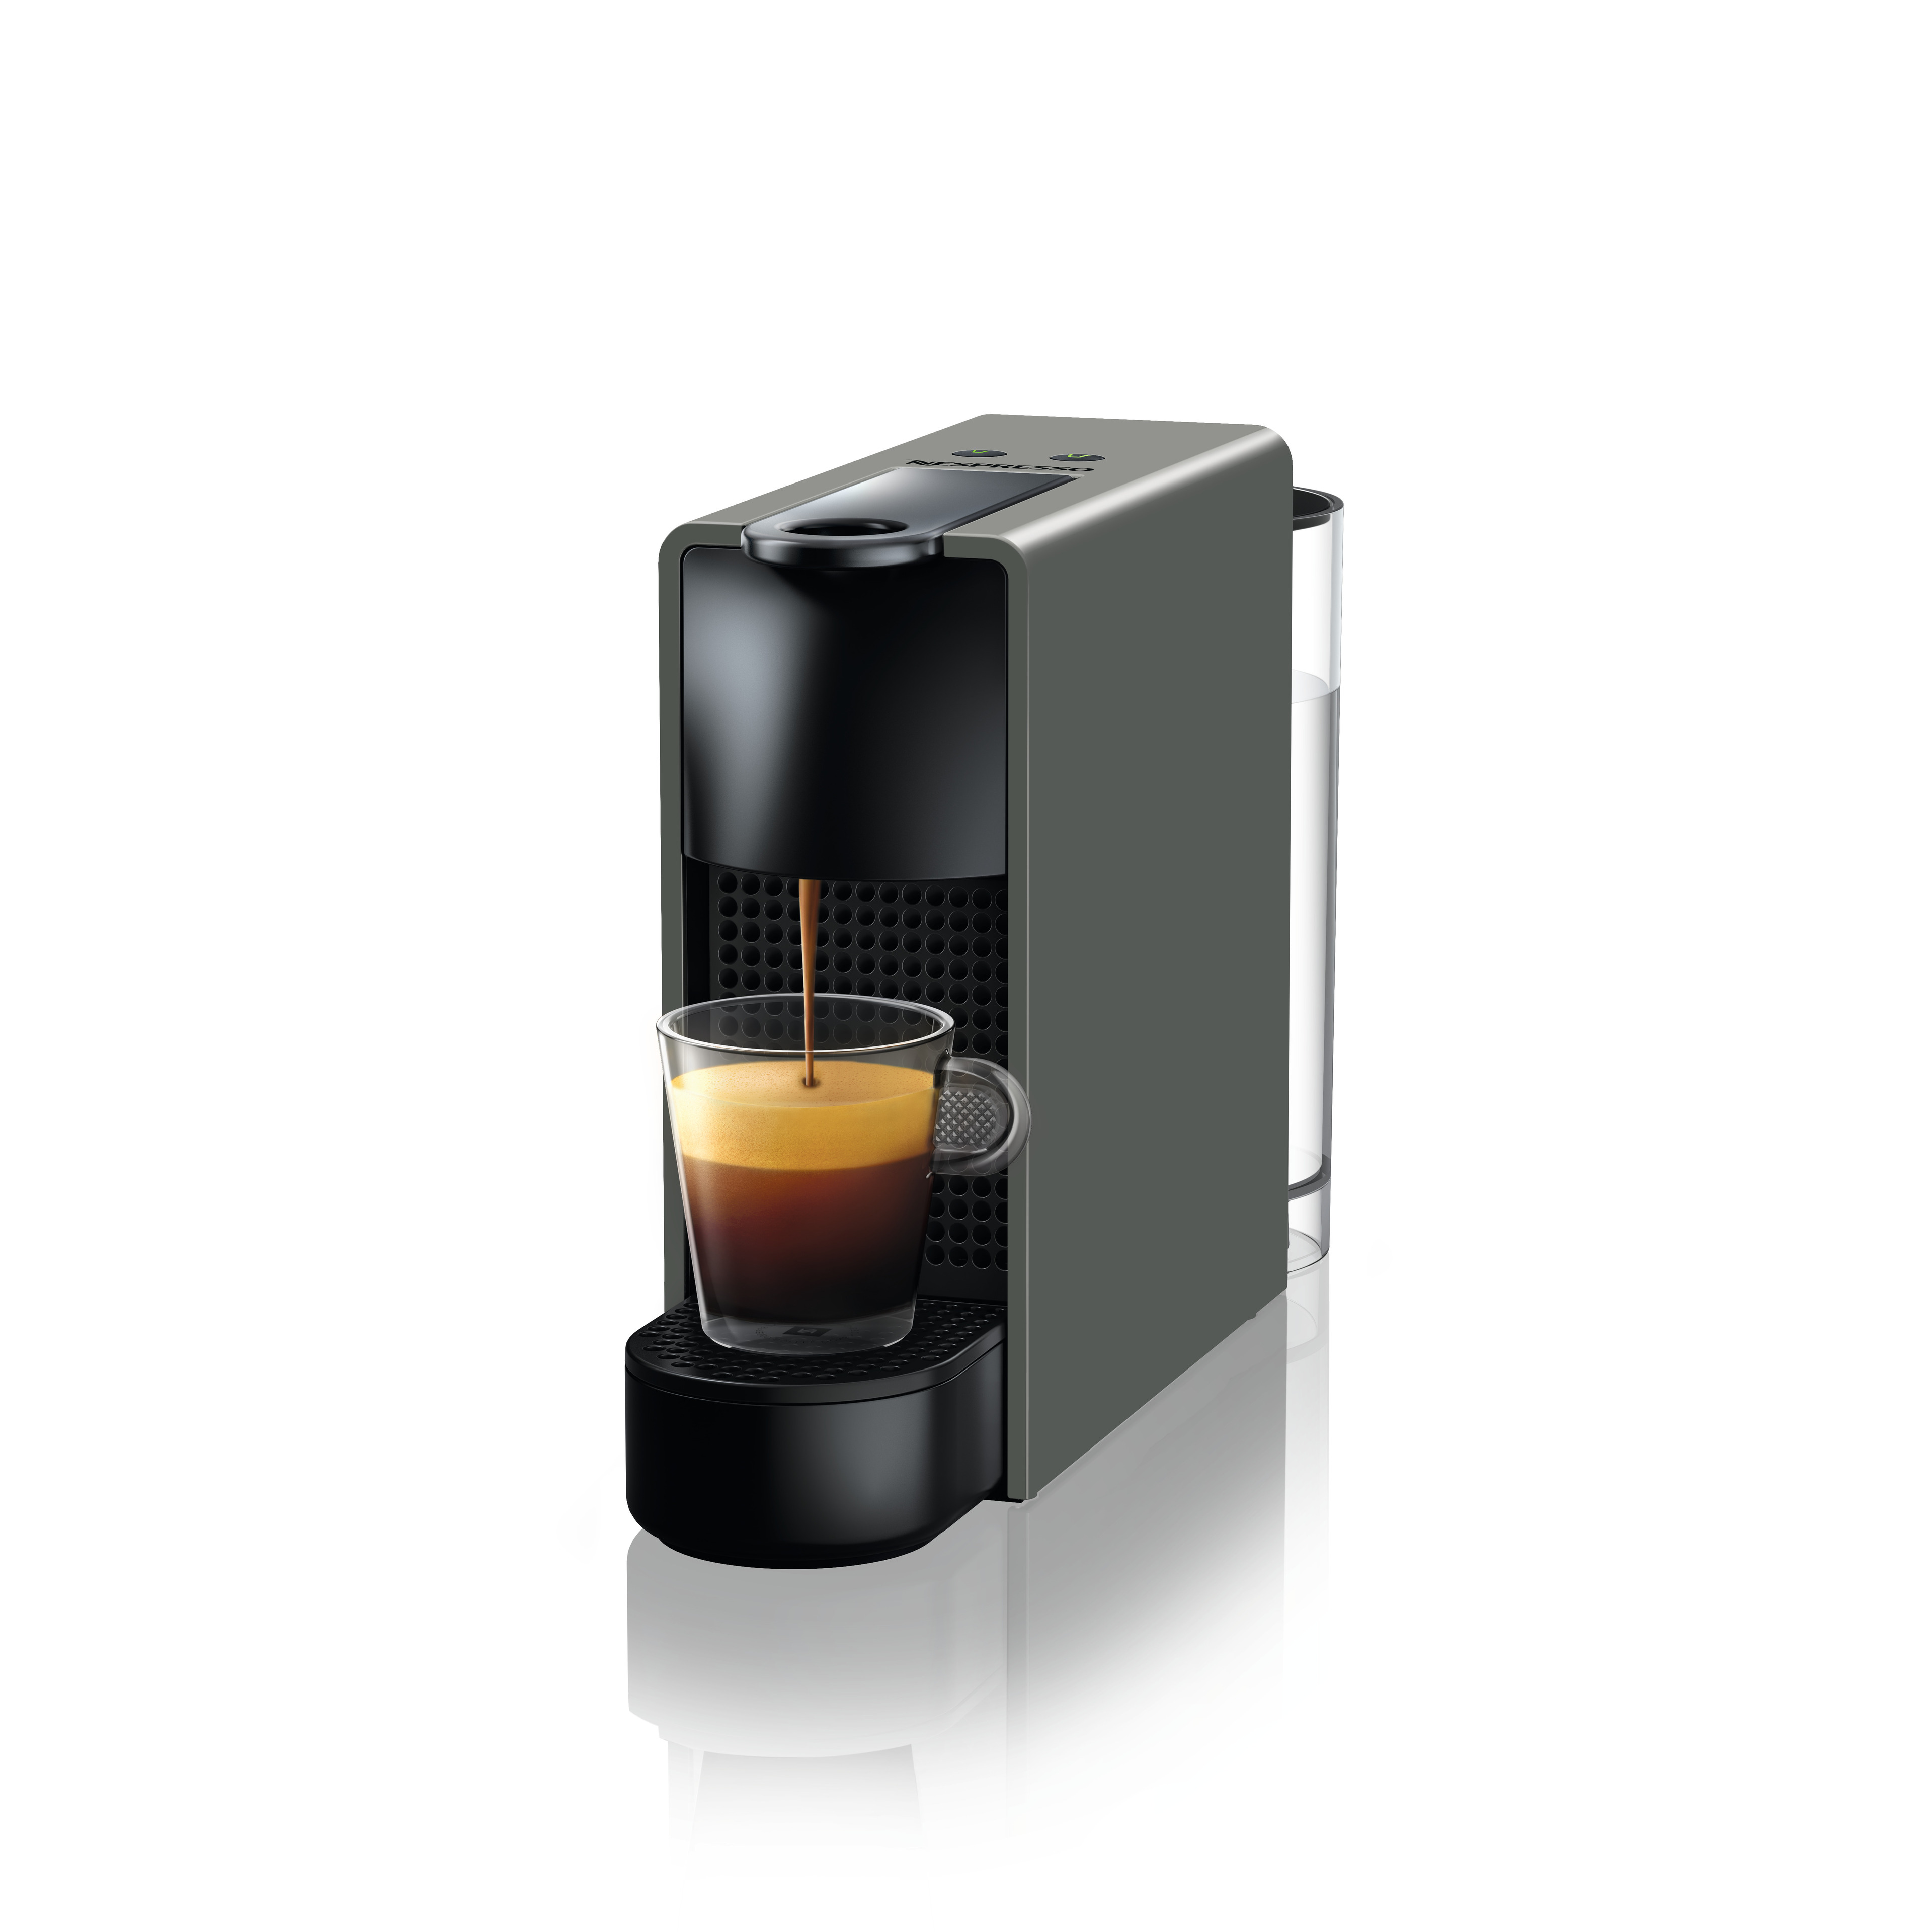 Nespresso Essenza Mini 膠囊咖啡機 C30 (灰色)